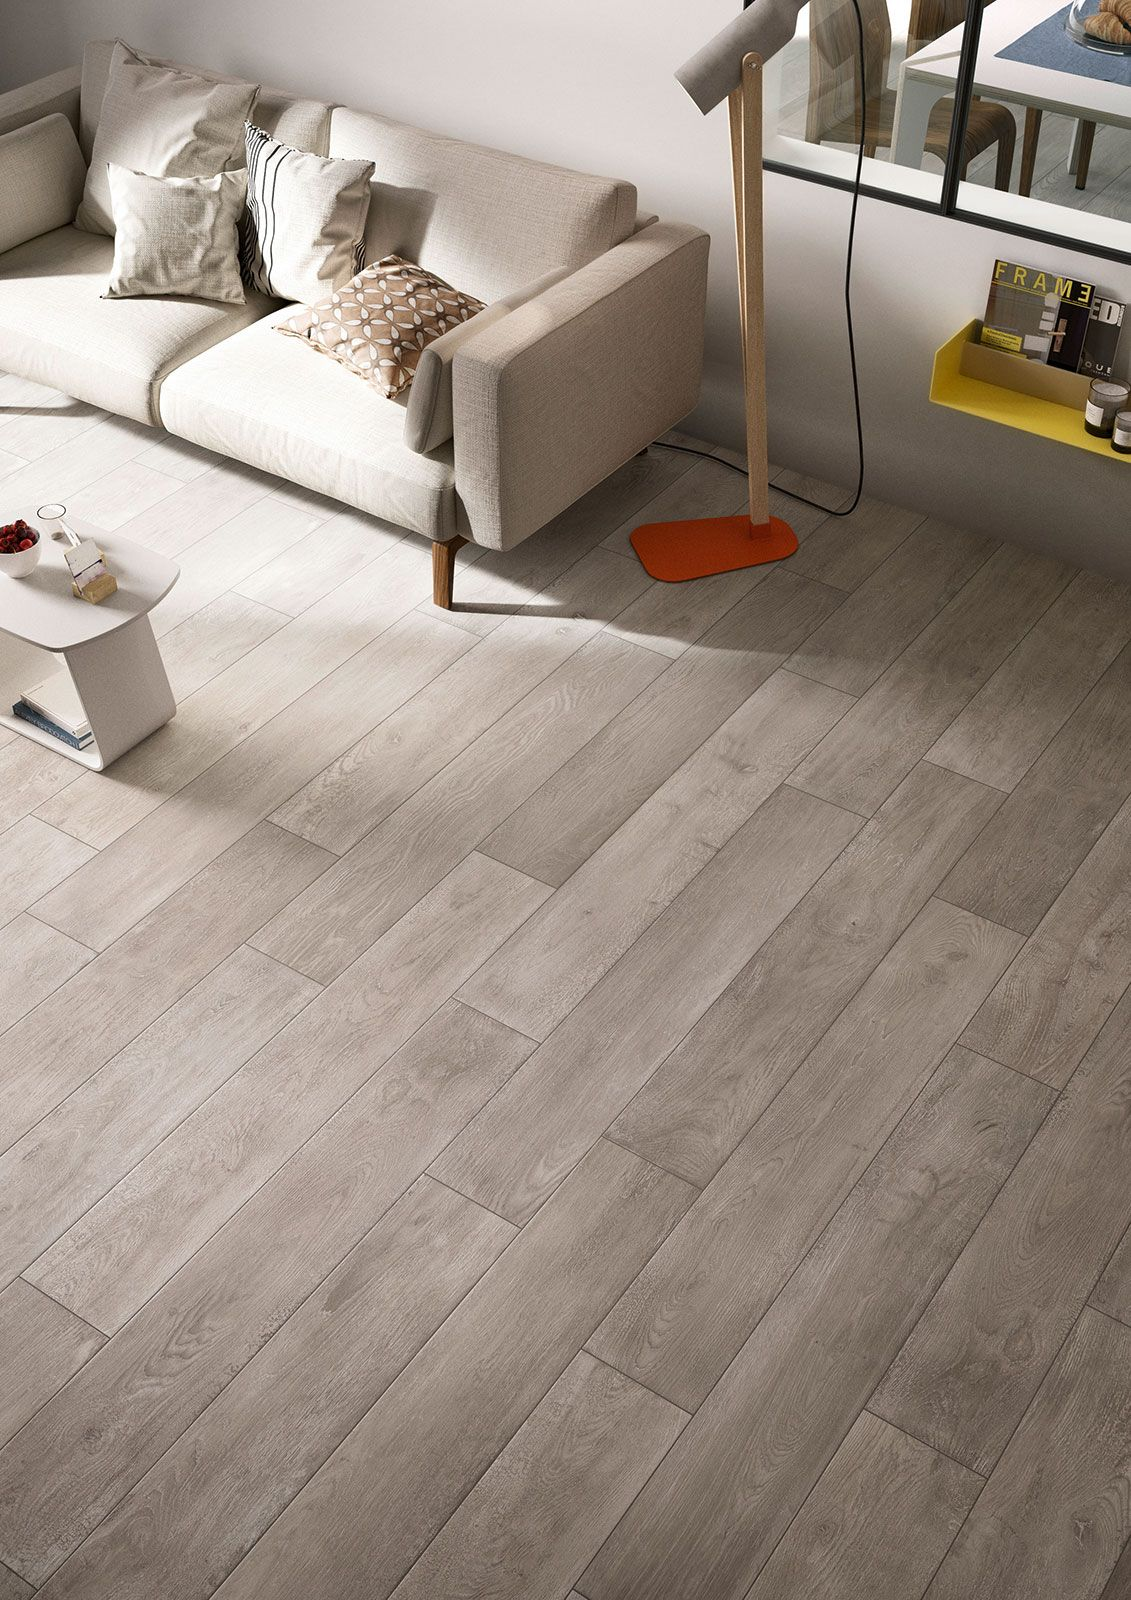 treverktime ceramic tiles marazzi 6535 flooring in 2019 wood rh pinterest com